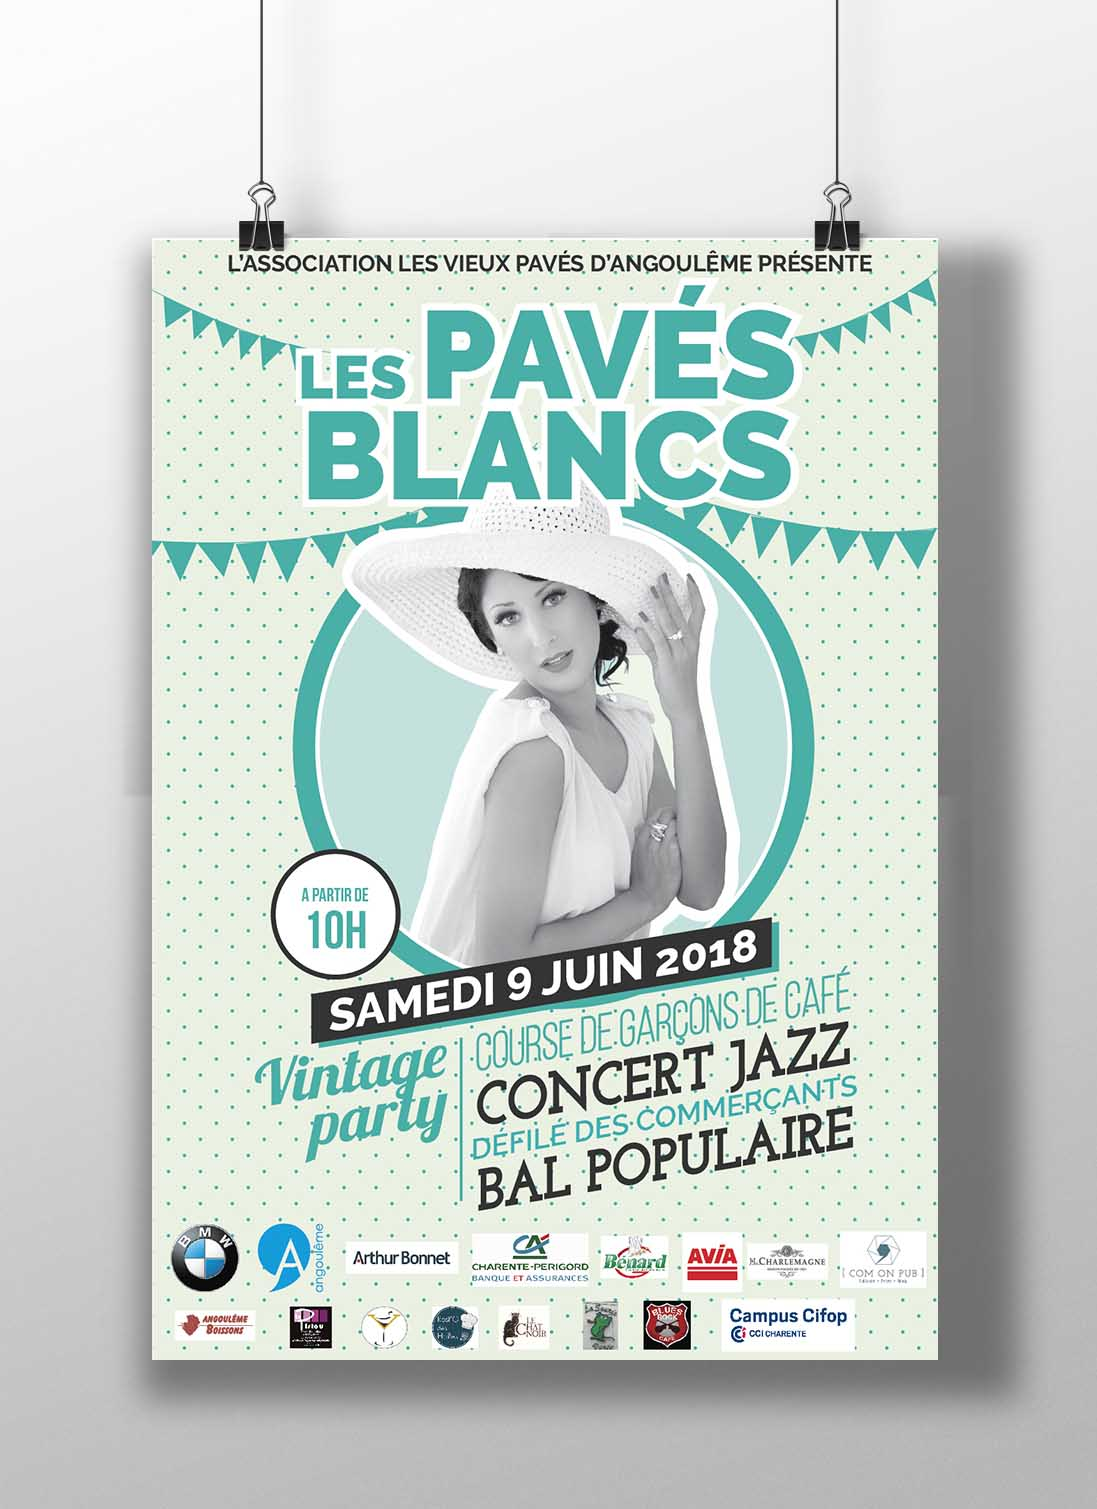 Paves-blancs-affiche 2018